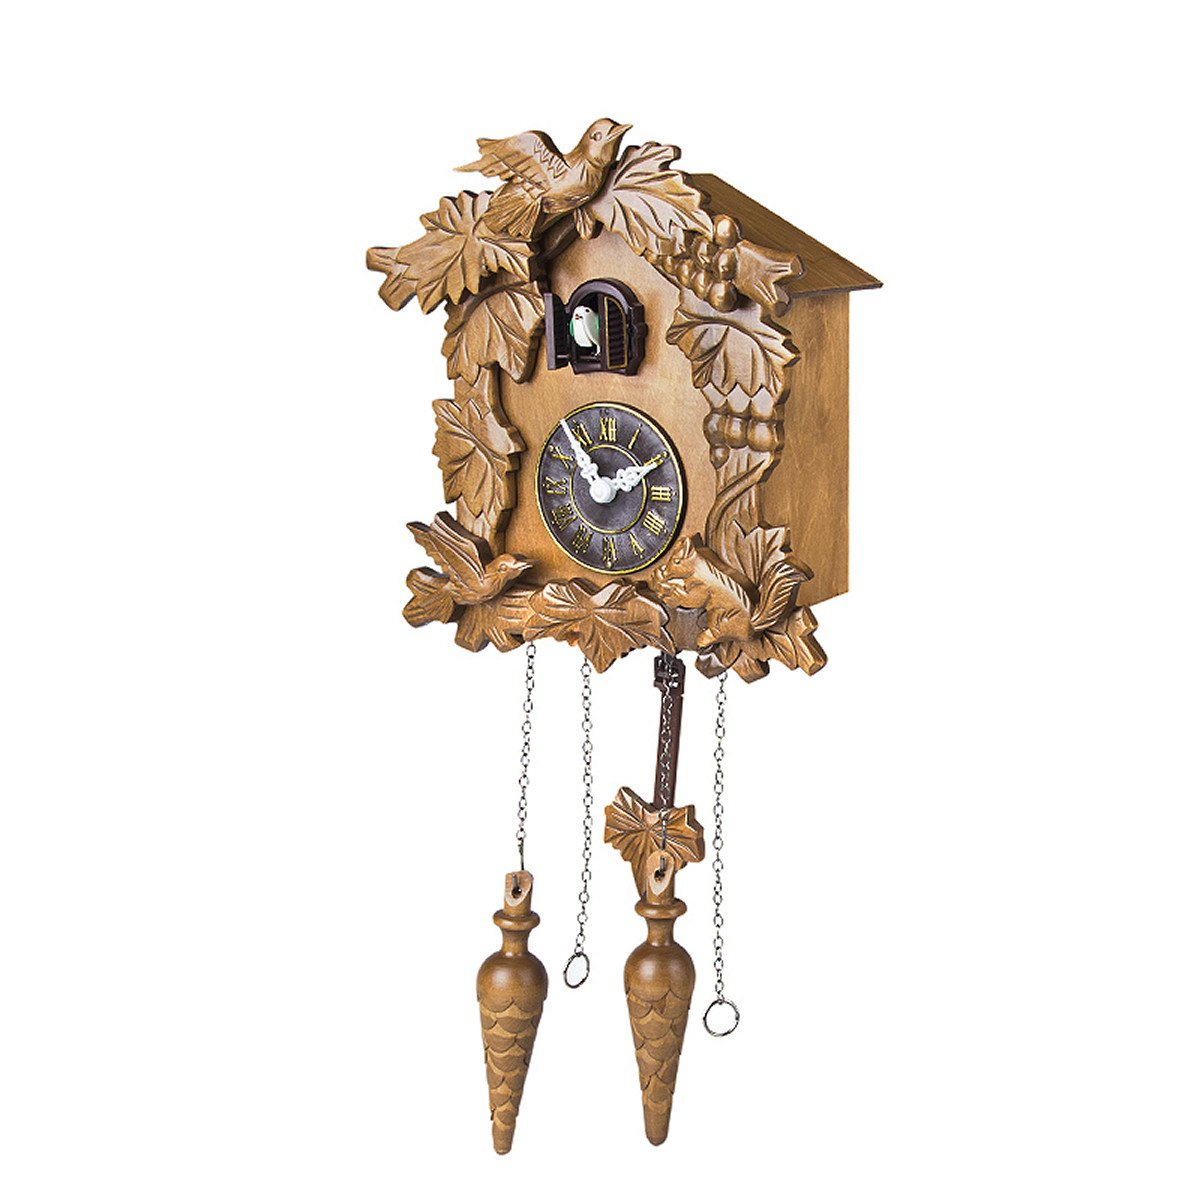 Kendal Handcrafted Wood Cuckoo Clock by Kendal